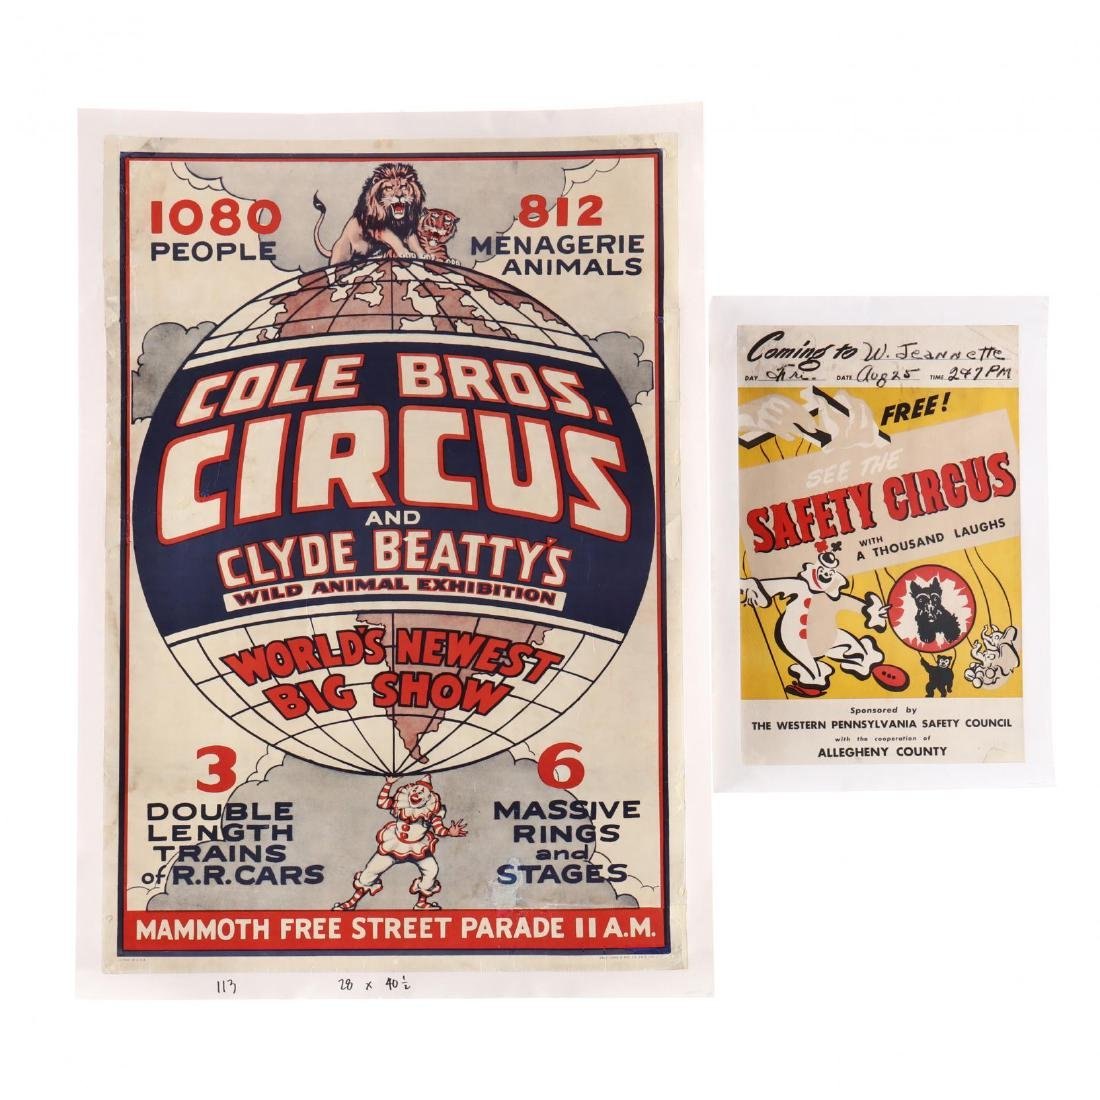 Two Vintage Circus Posters, Featuring Various Animals